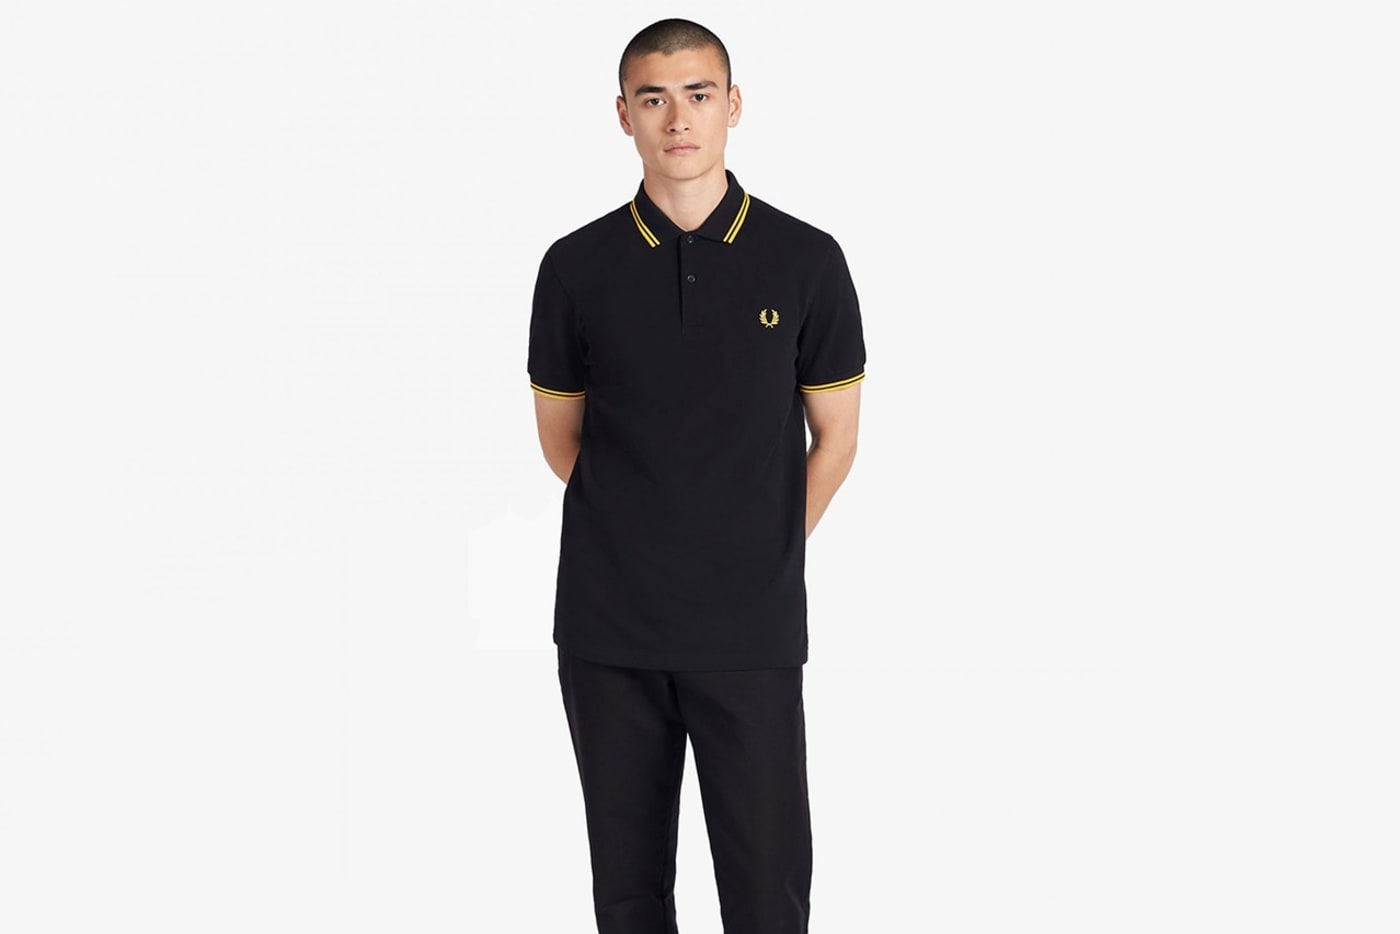 fred perry black yellow twin tipped shirt proud boys statement 01